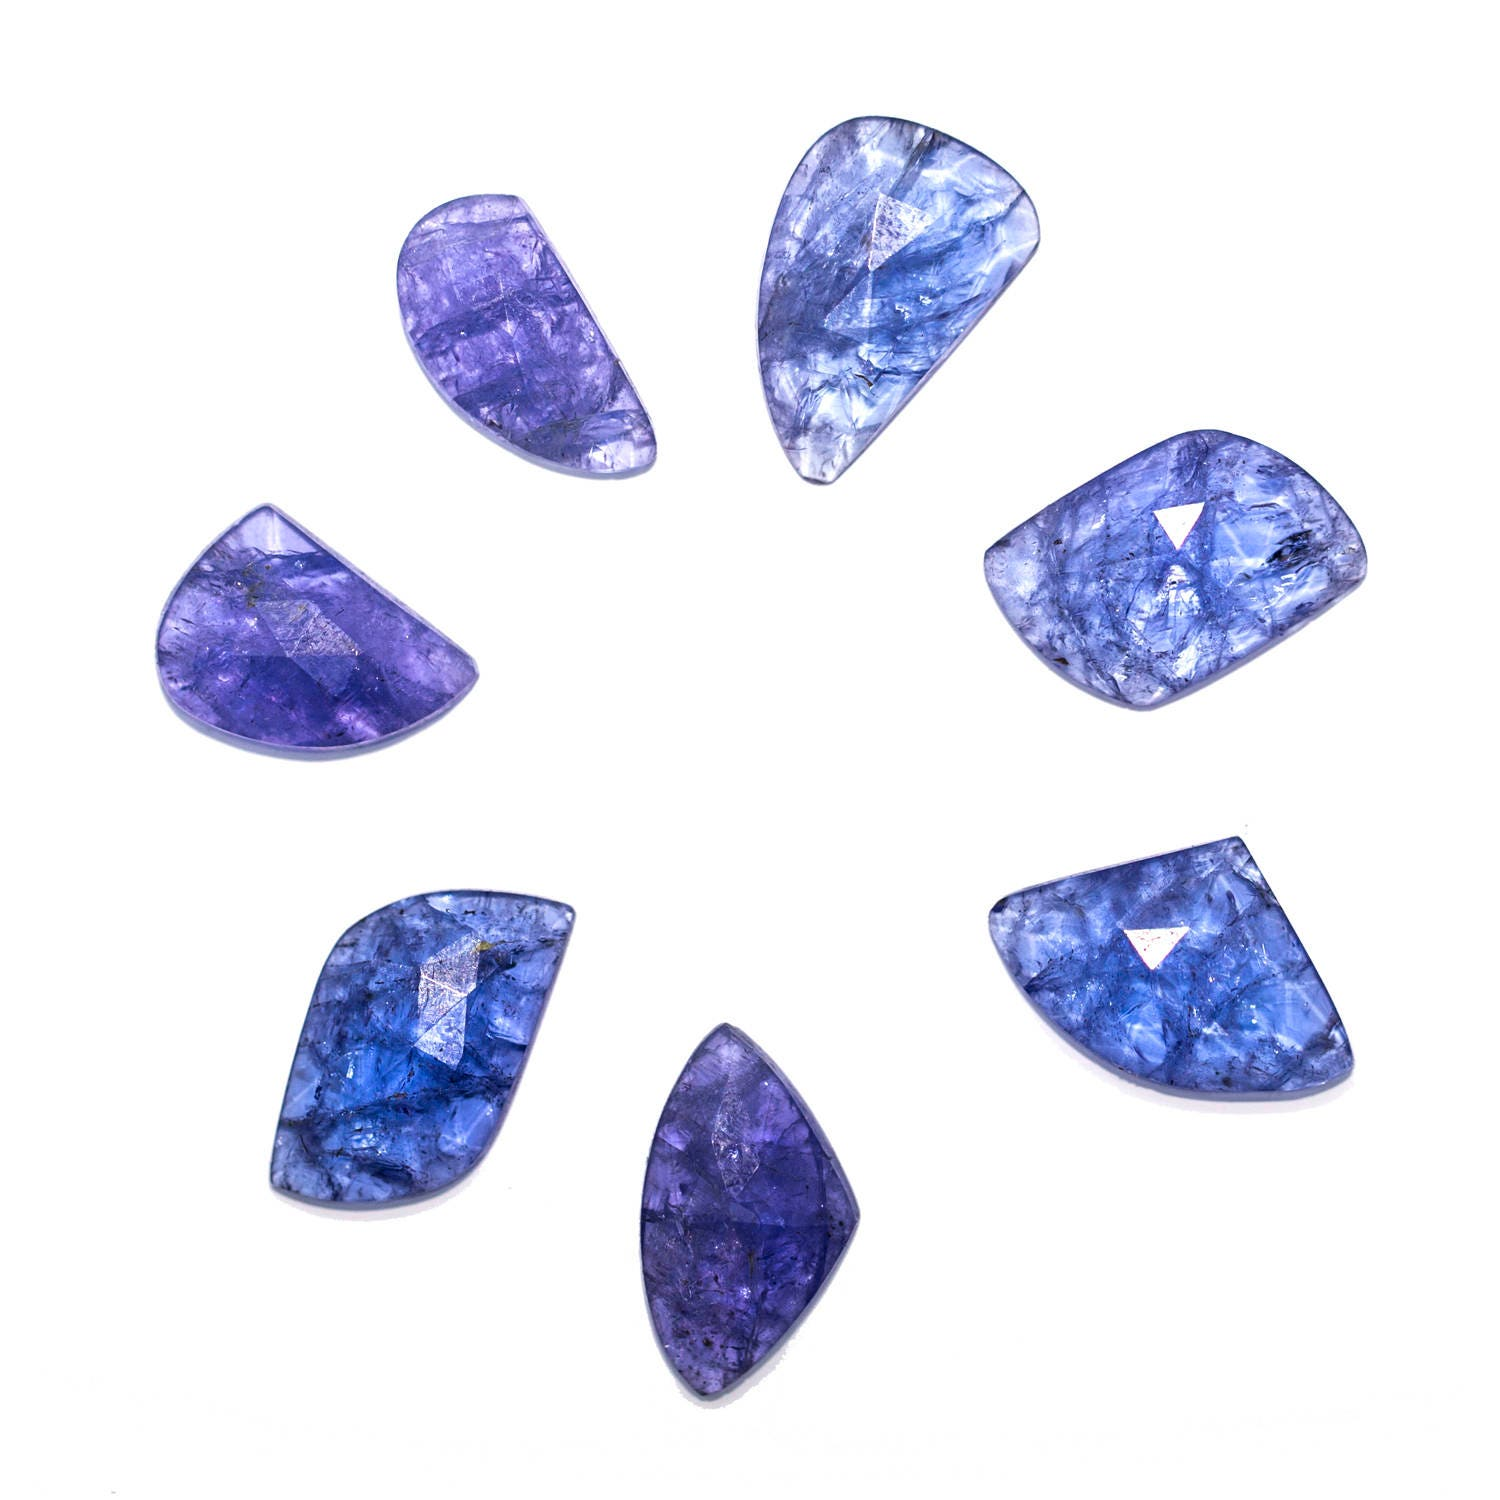 loose buy at tanzanite gemstones heart prices wholesale gemstone shape